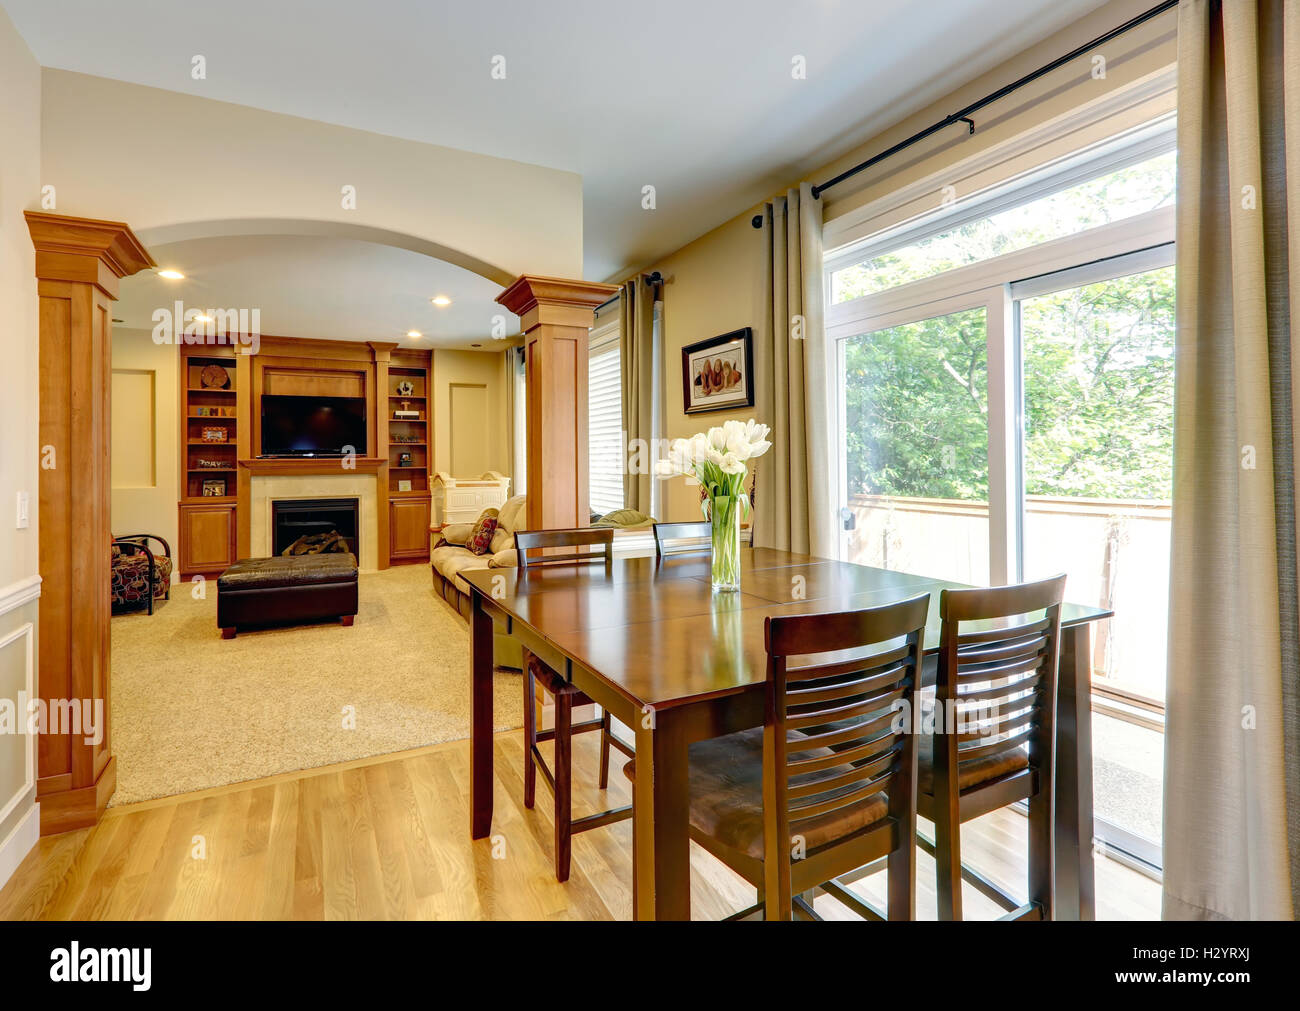 luxury home interior with column wall stock photo 122313370 alamy